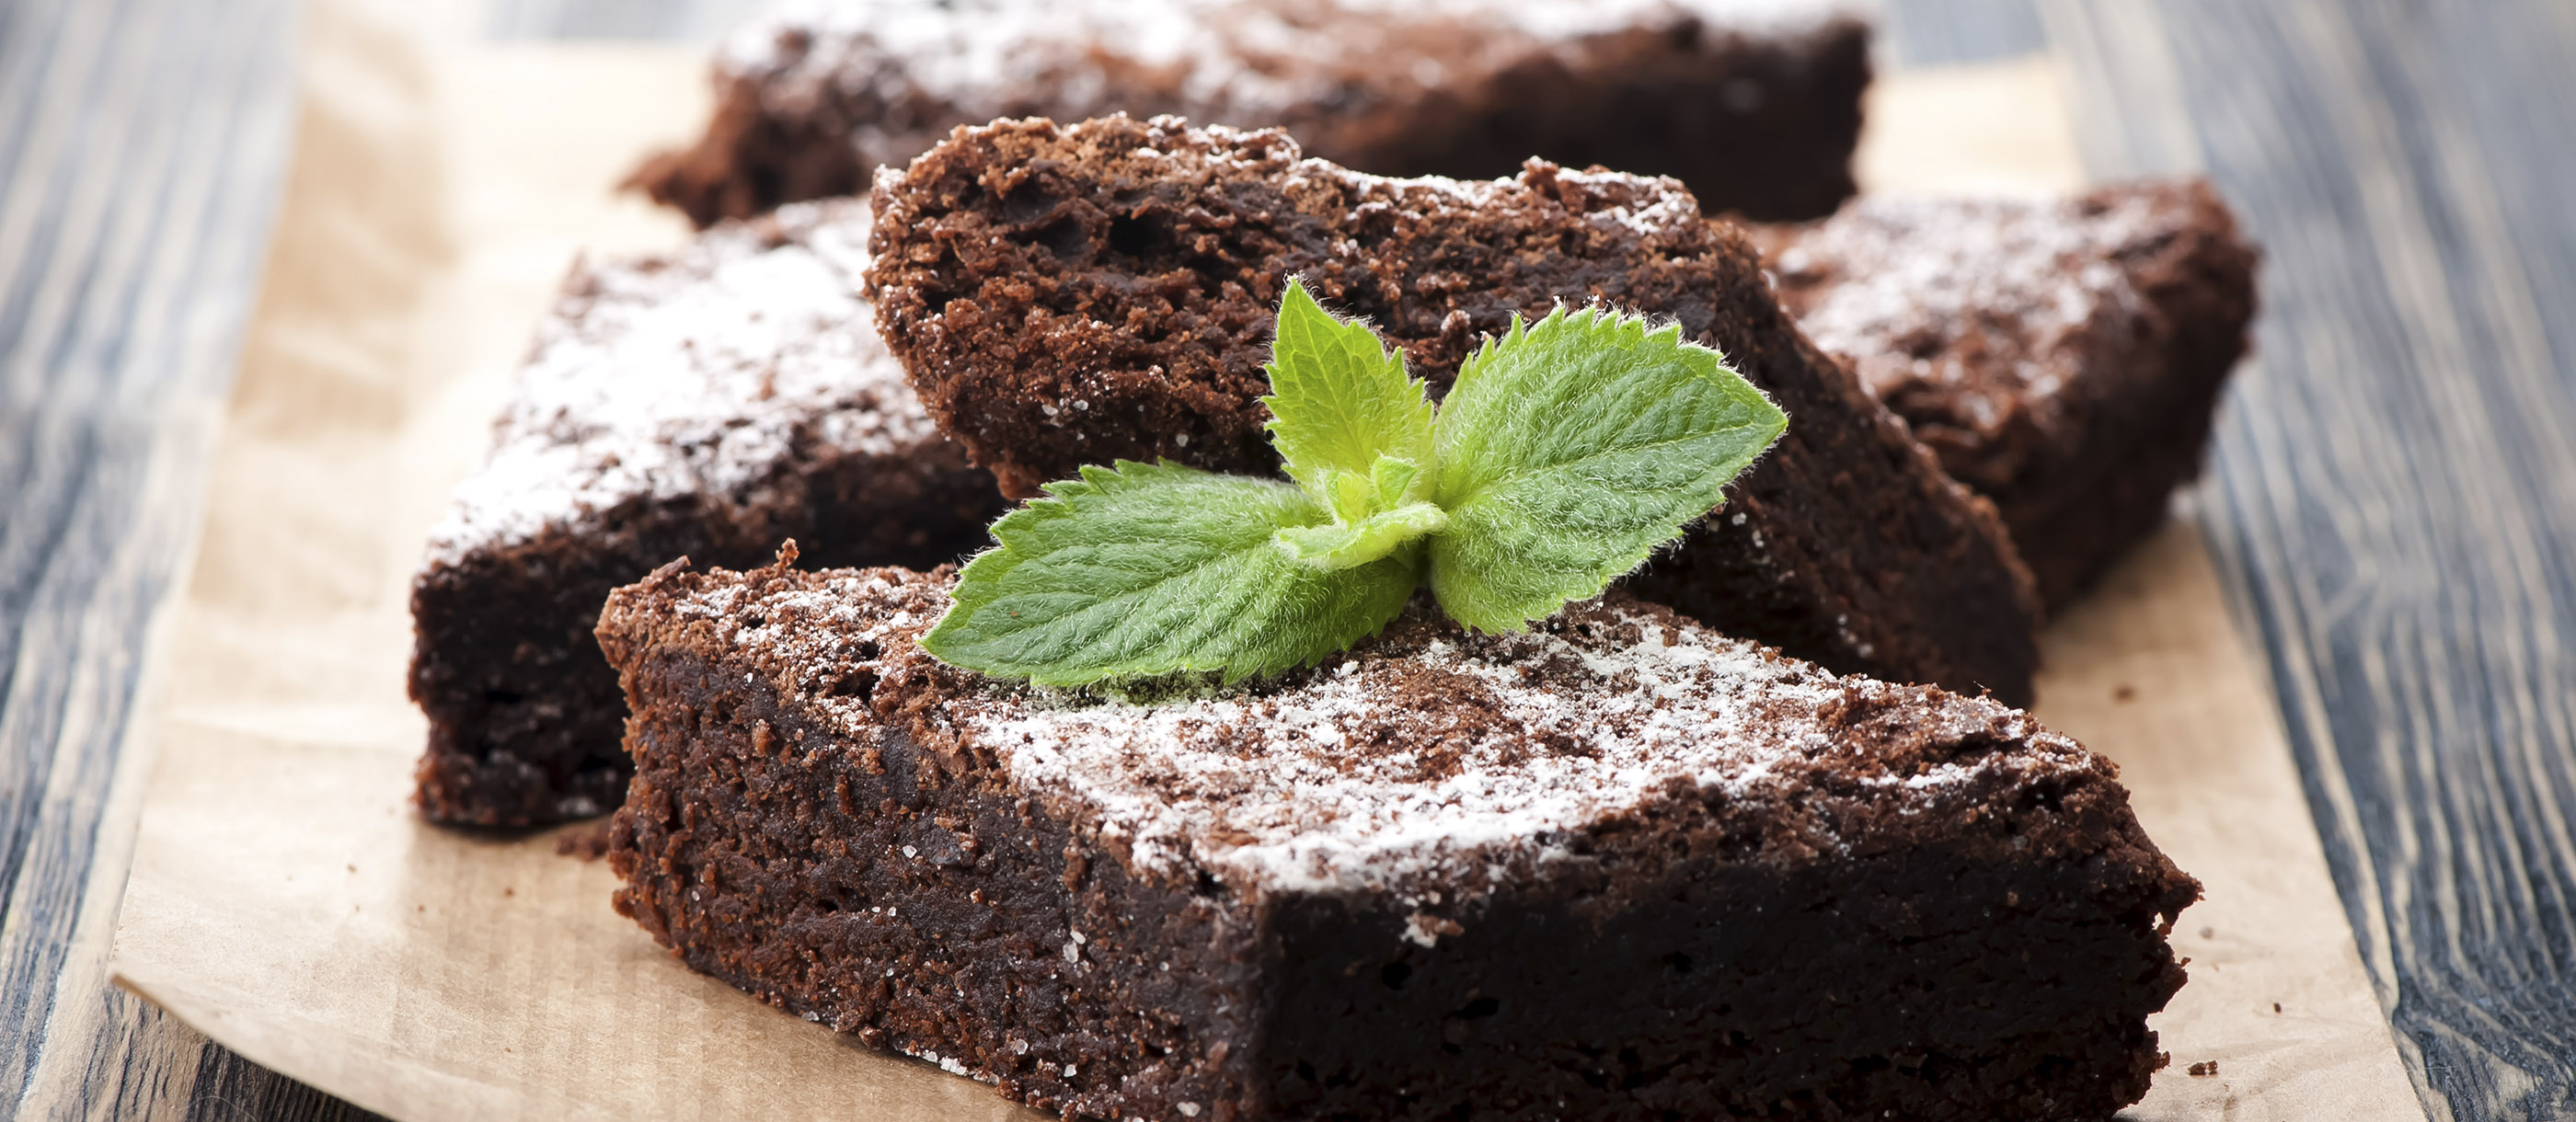 Brownies | Traditional Chocolate Dessert From United States of America